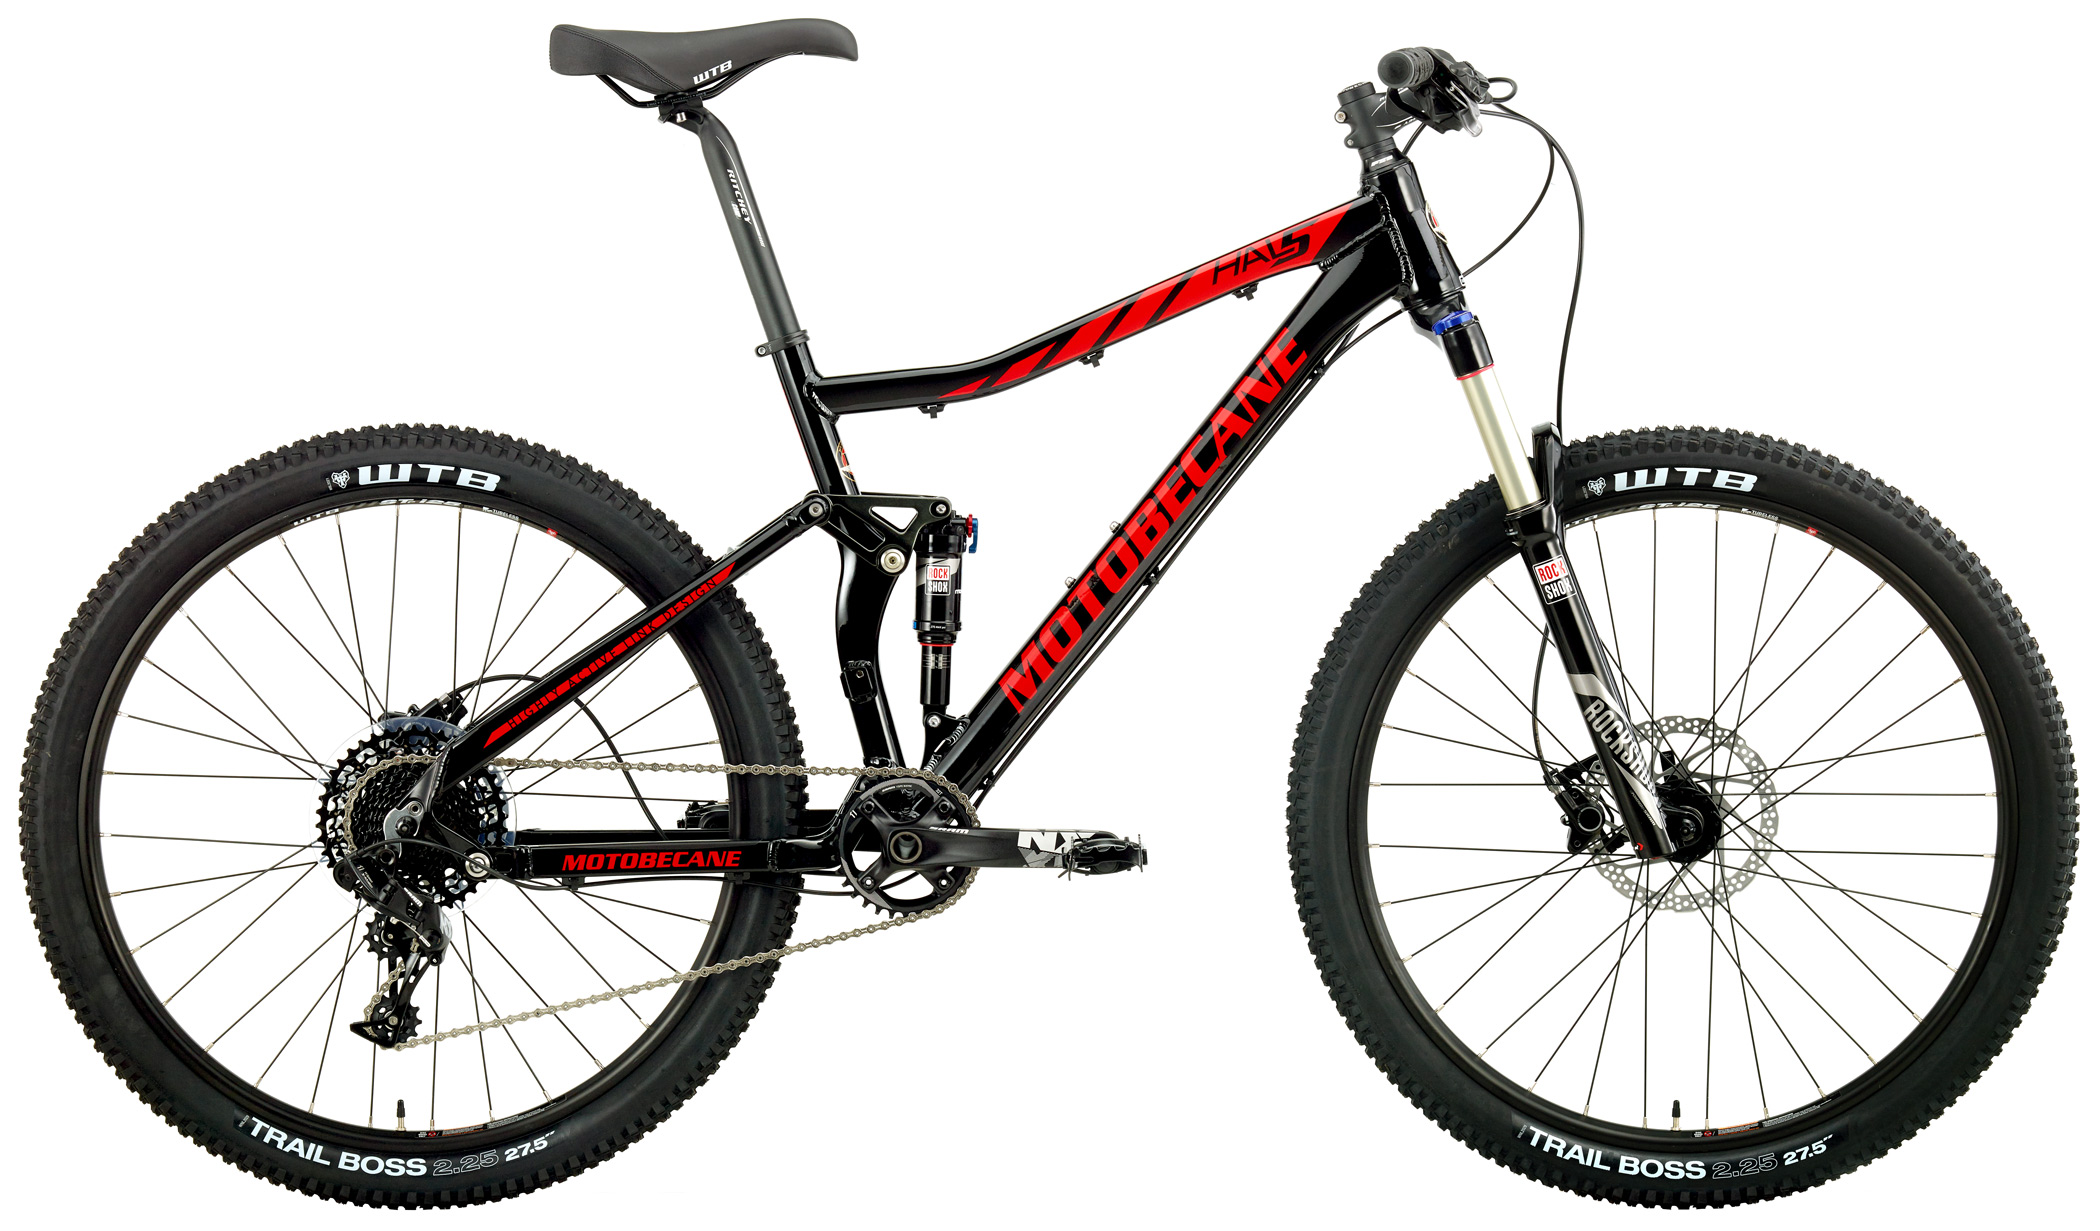 Bikes 2017 Motobecane Hal5 Sram NX 1 x 11 27.5 Dual Suspension Mountain Bike Image